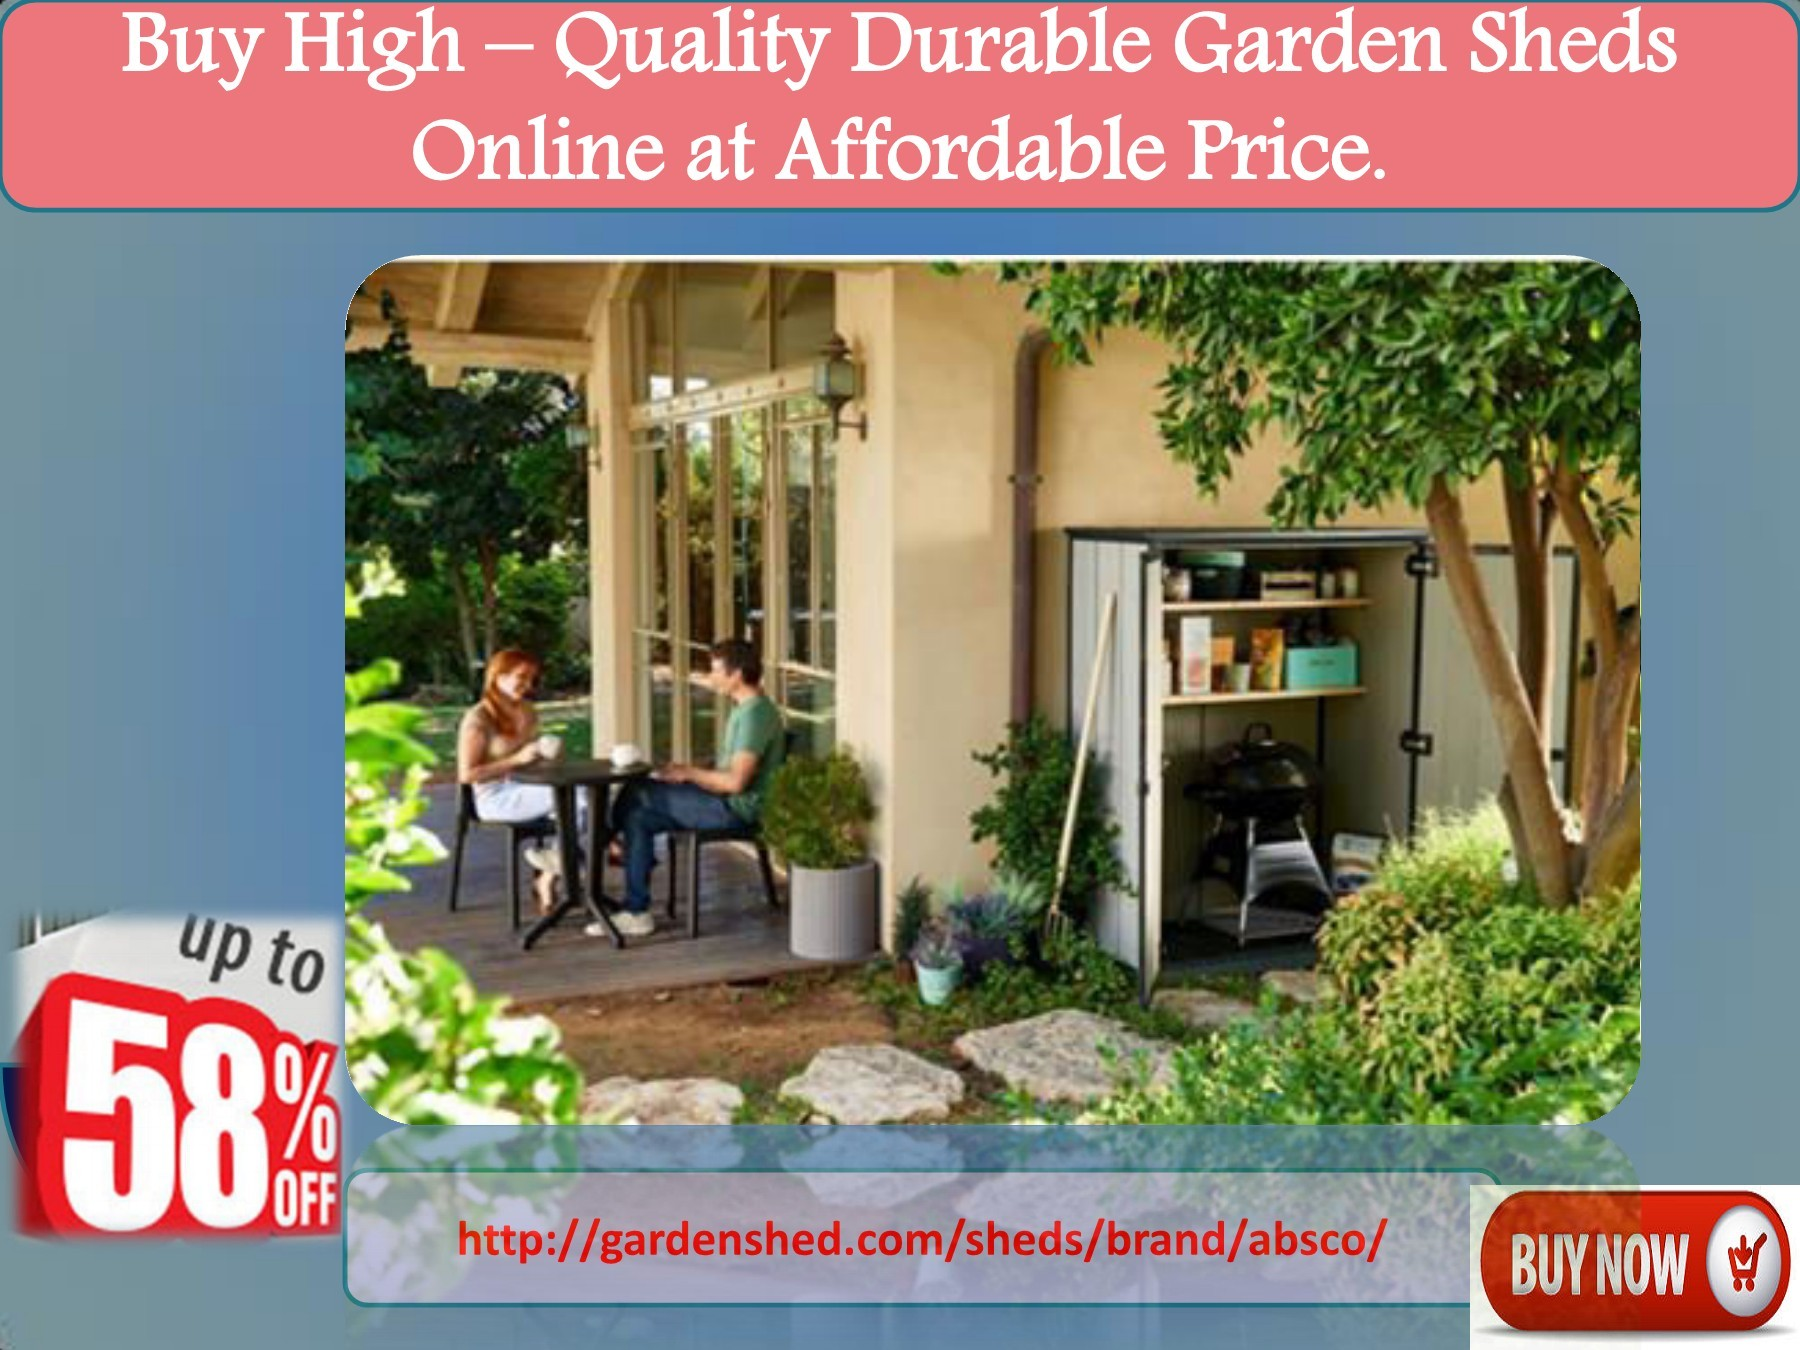 Buy High – Quality Durable Garden Sheds Online at Affordable